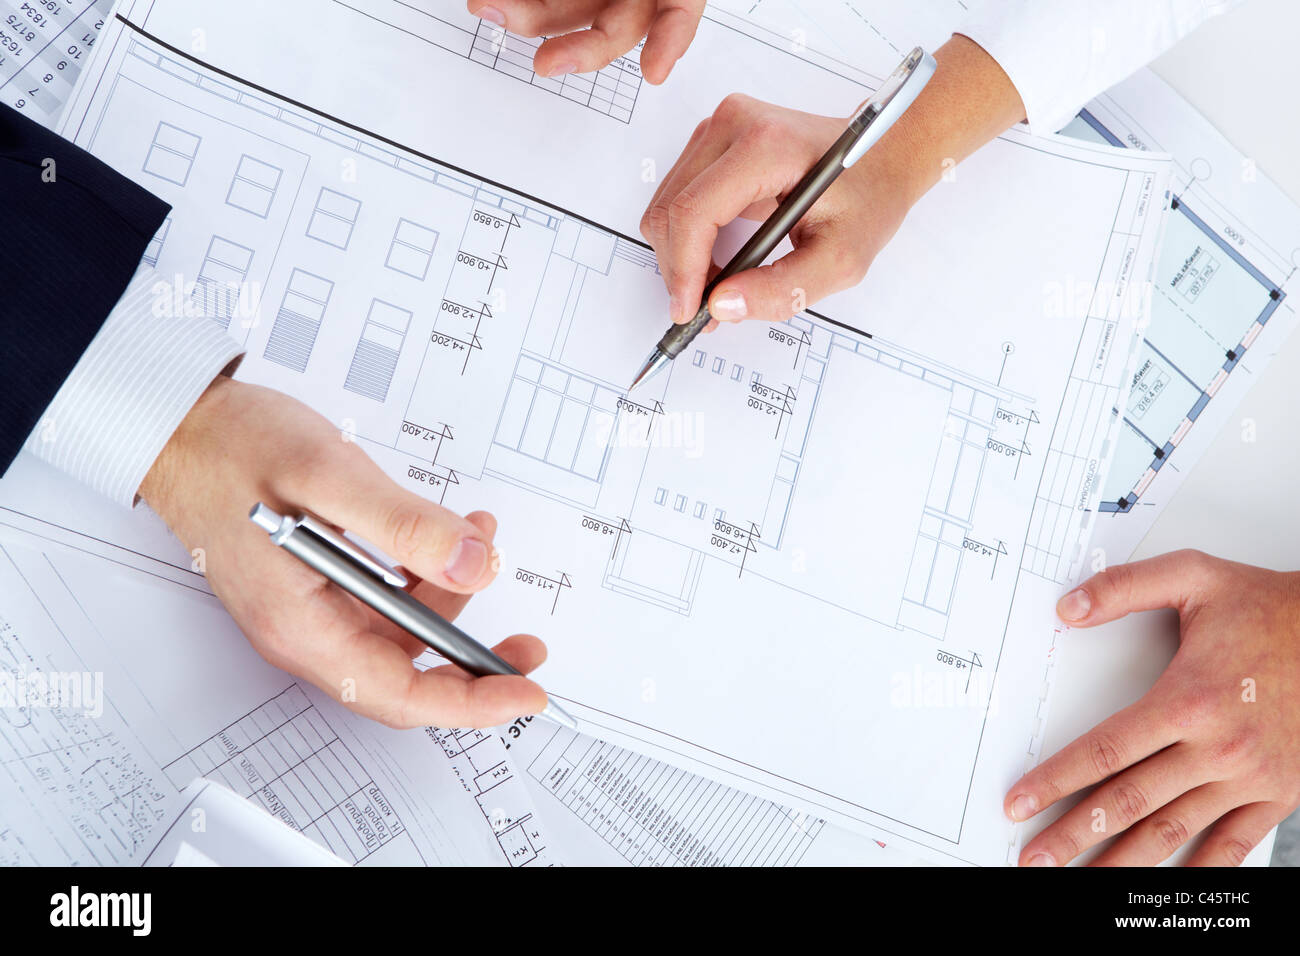 Close-up of engineers hands with pens over blueprints with sketches of projects - Stock Image